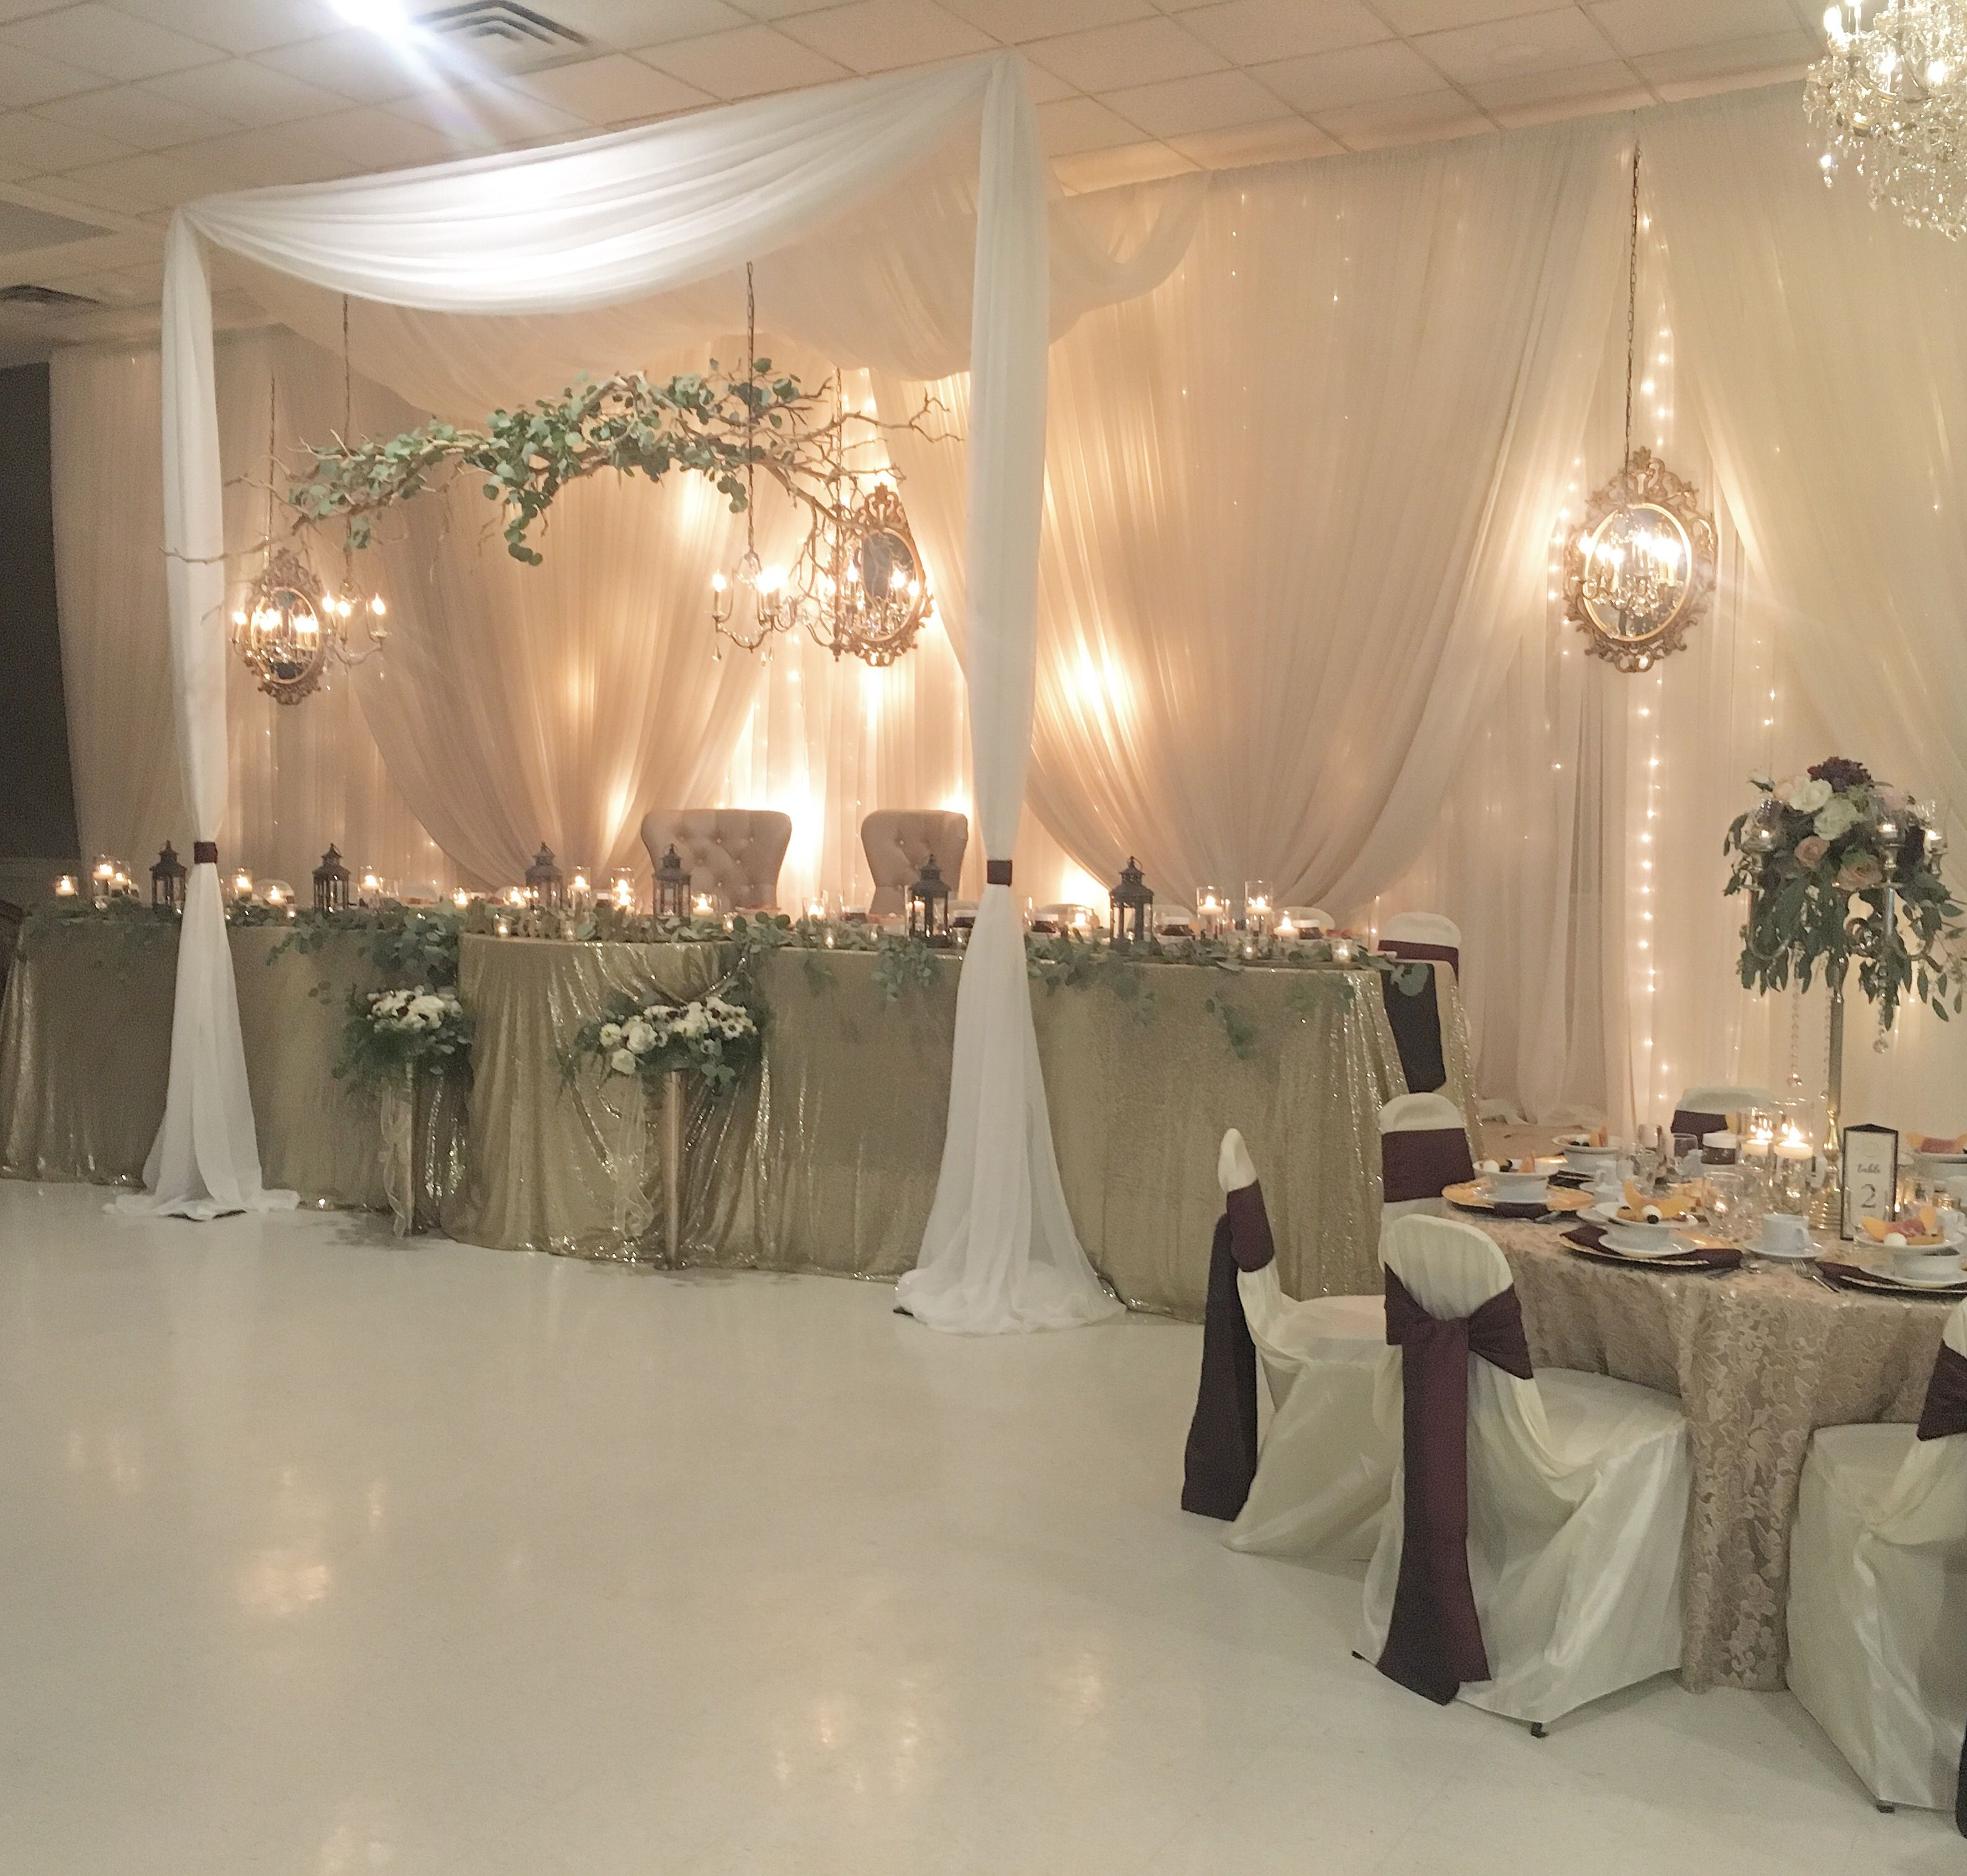 Wedding Reception Head Table Ideas: Pin By The Occasion On Head Tables In 2019